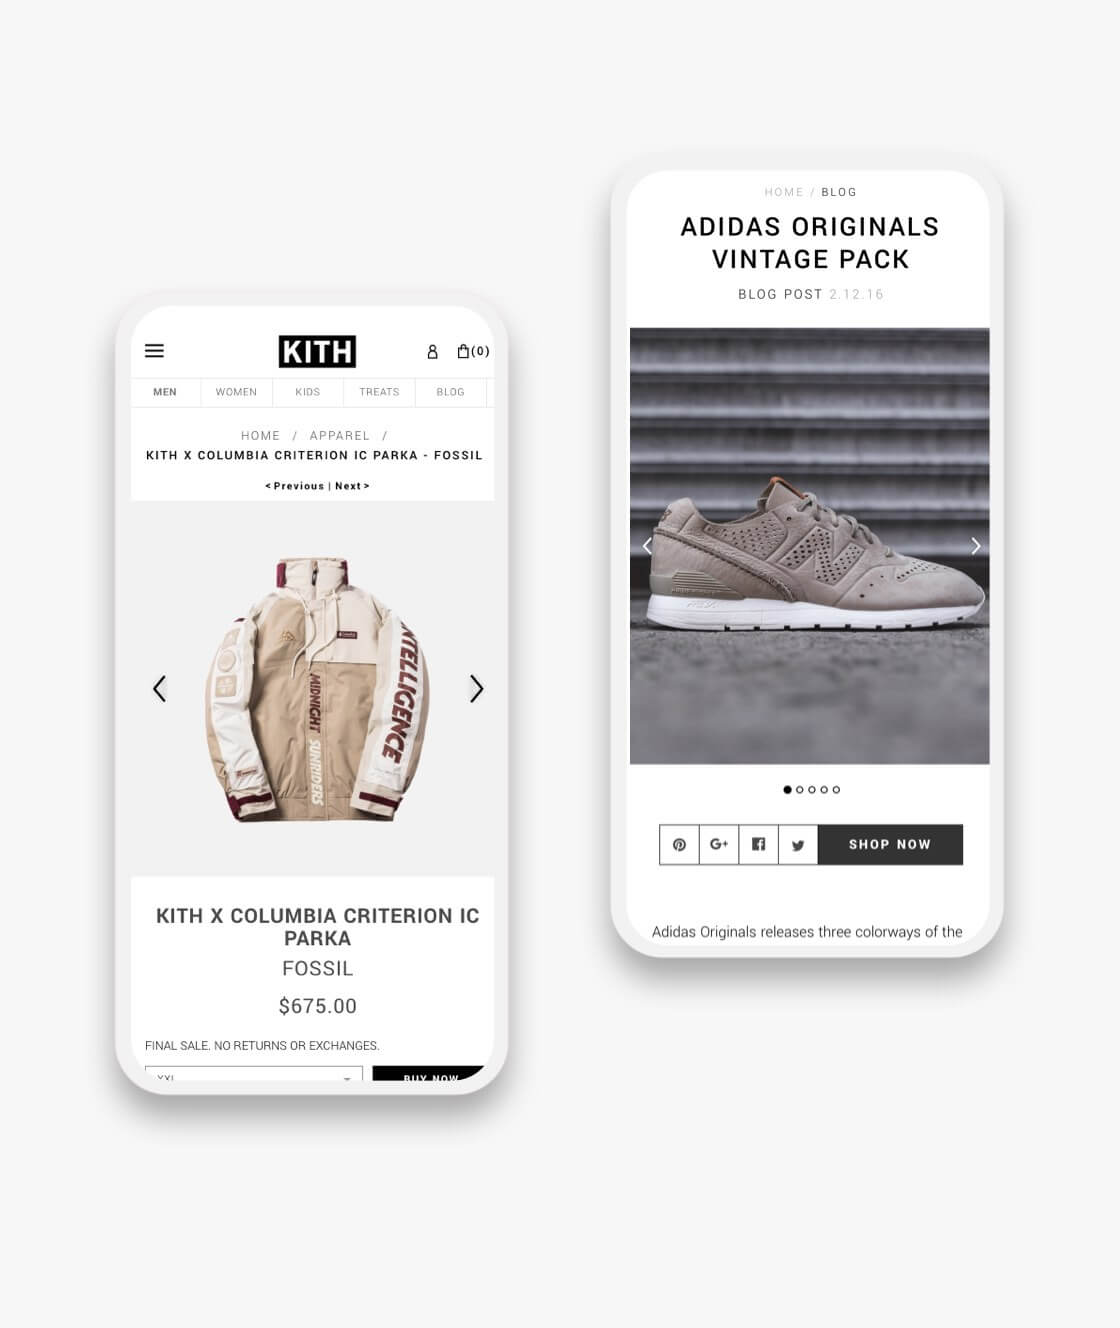 kith website product pages on mobile